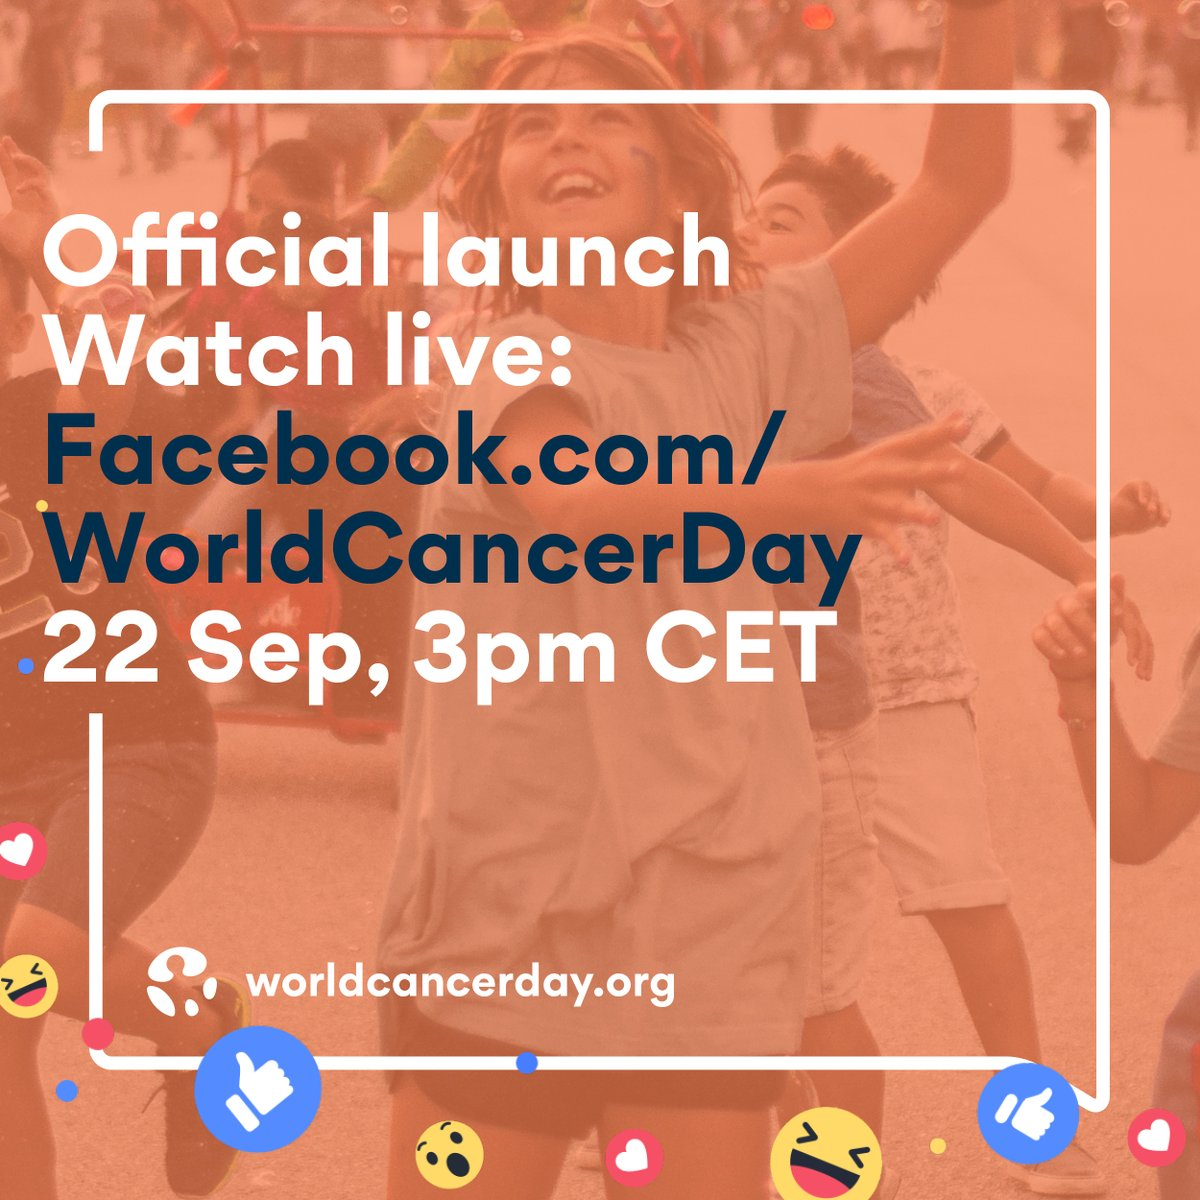 Join us on Facebook Live as we officially launch the final year of the #WorldCancerDay #IAmAndIWill campaign. 22 Sep, 3pm CET.   https://t.co/fjDZYm7ehX https://t.co/WttbaWbryr